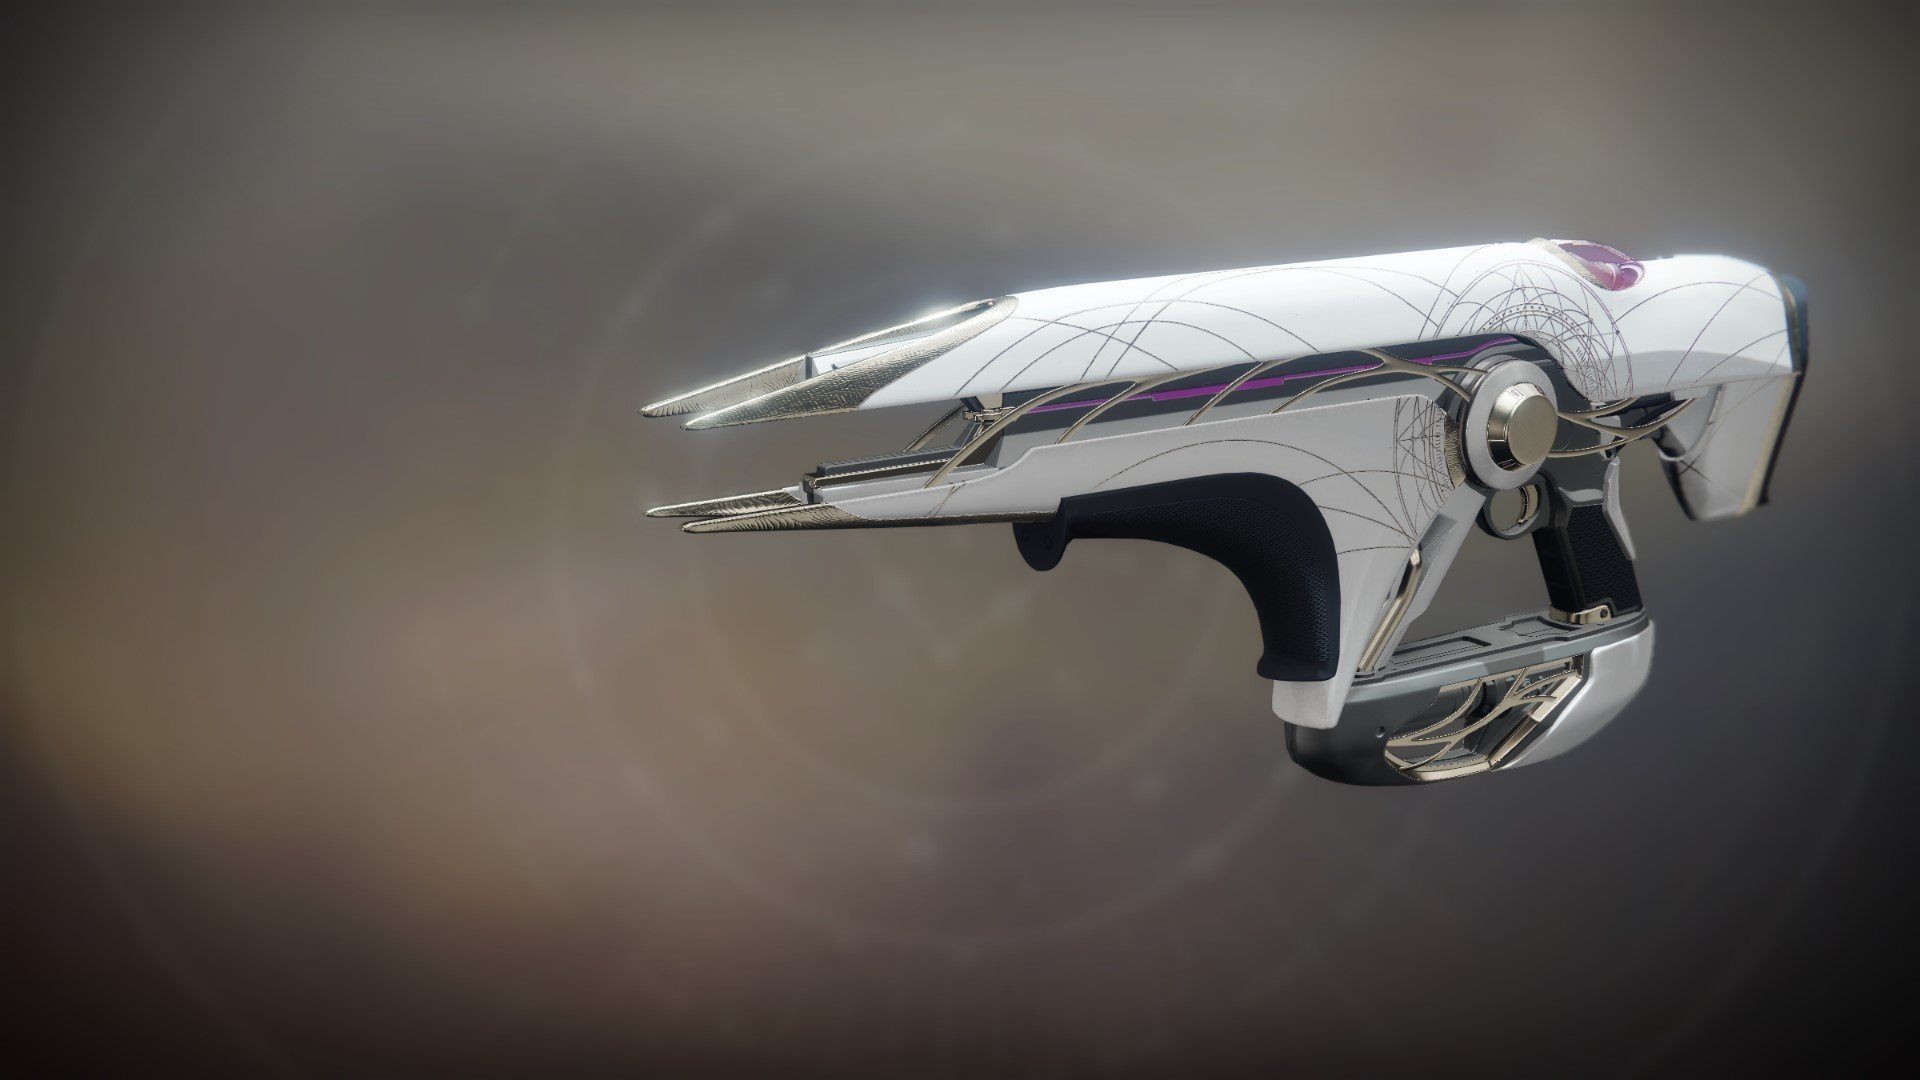 What Xur is selling in destiny 2 - July 31, 2020